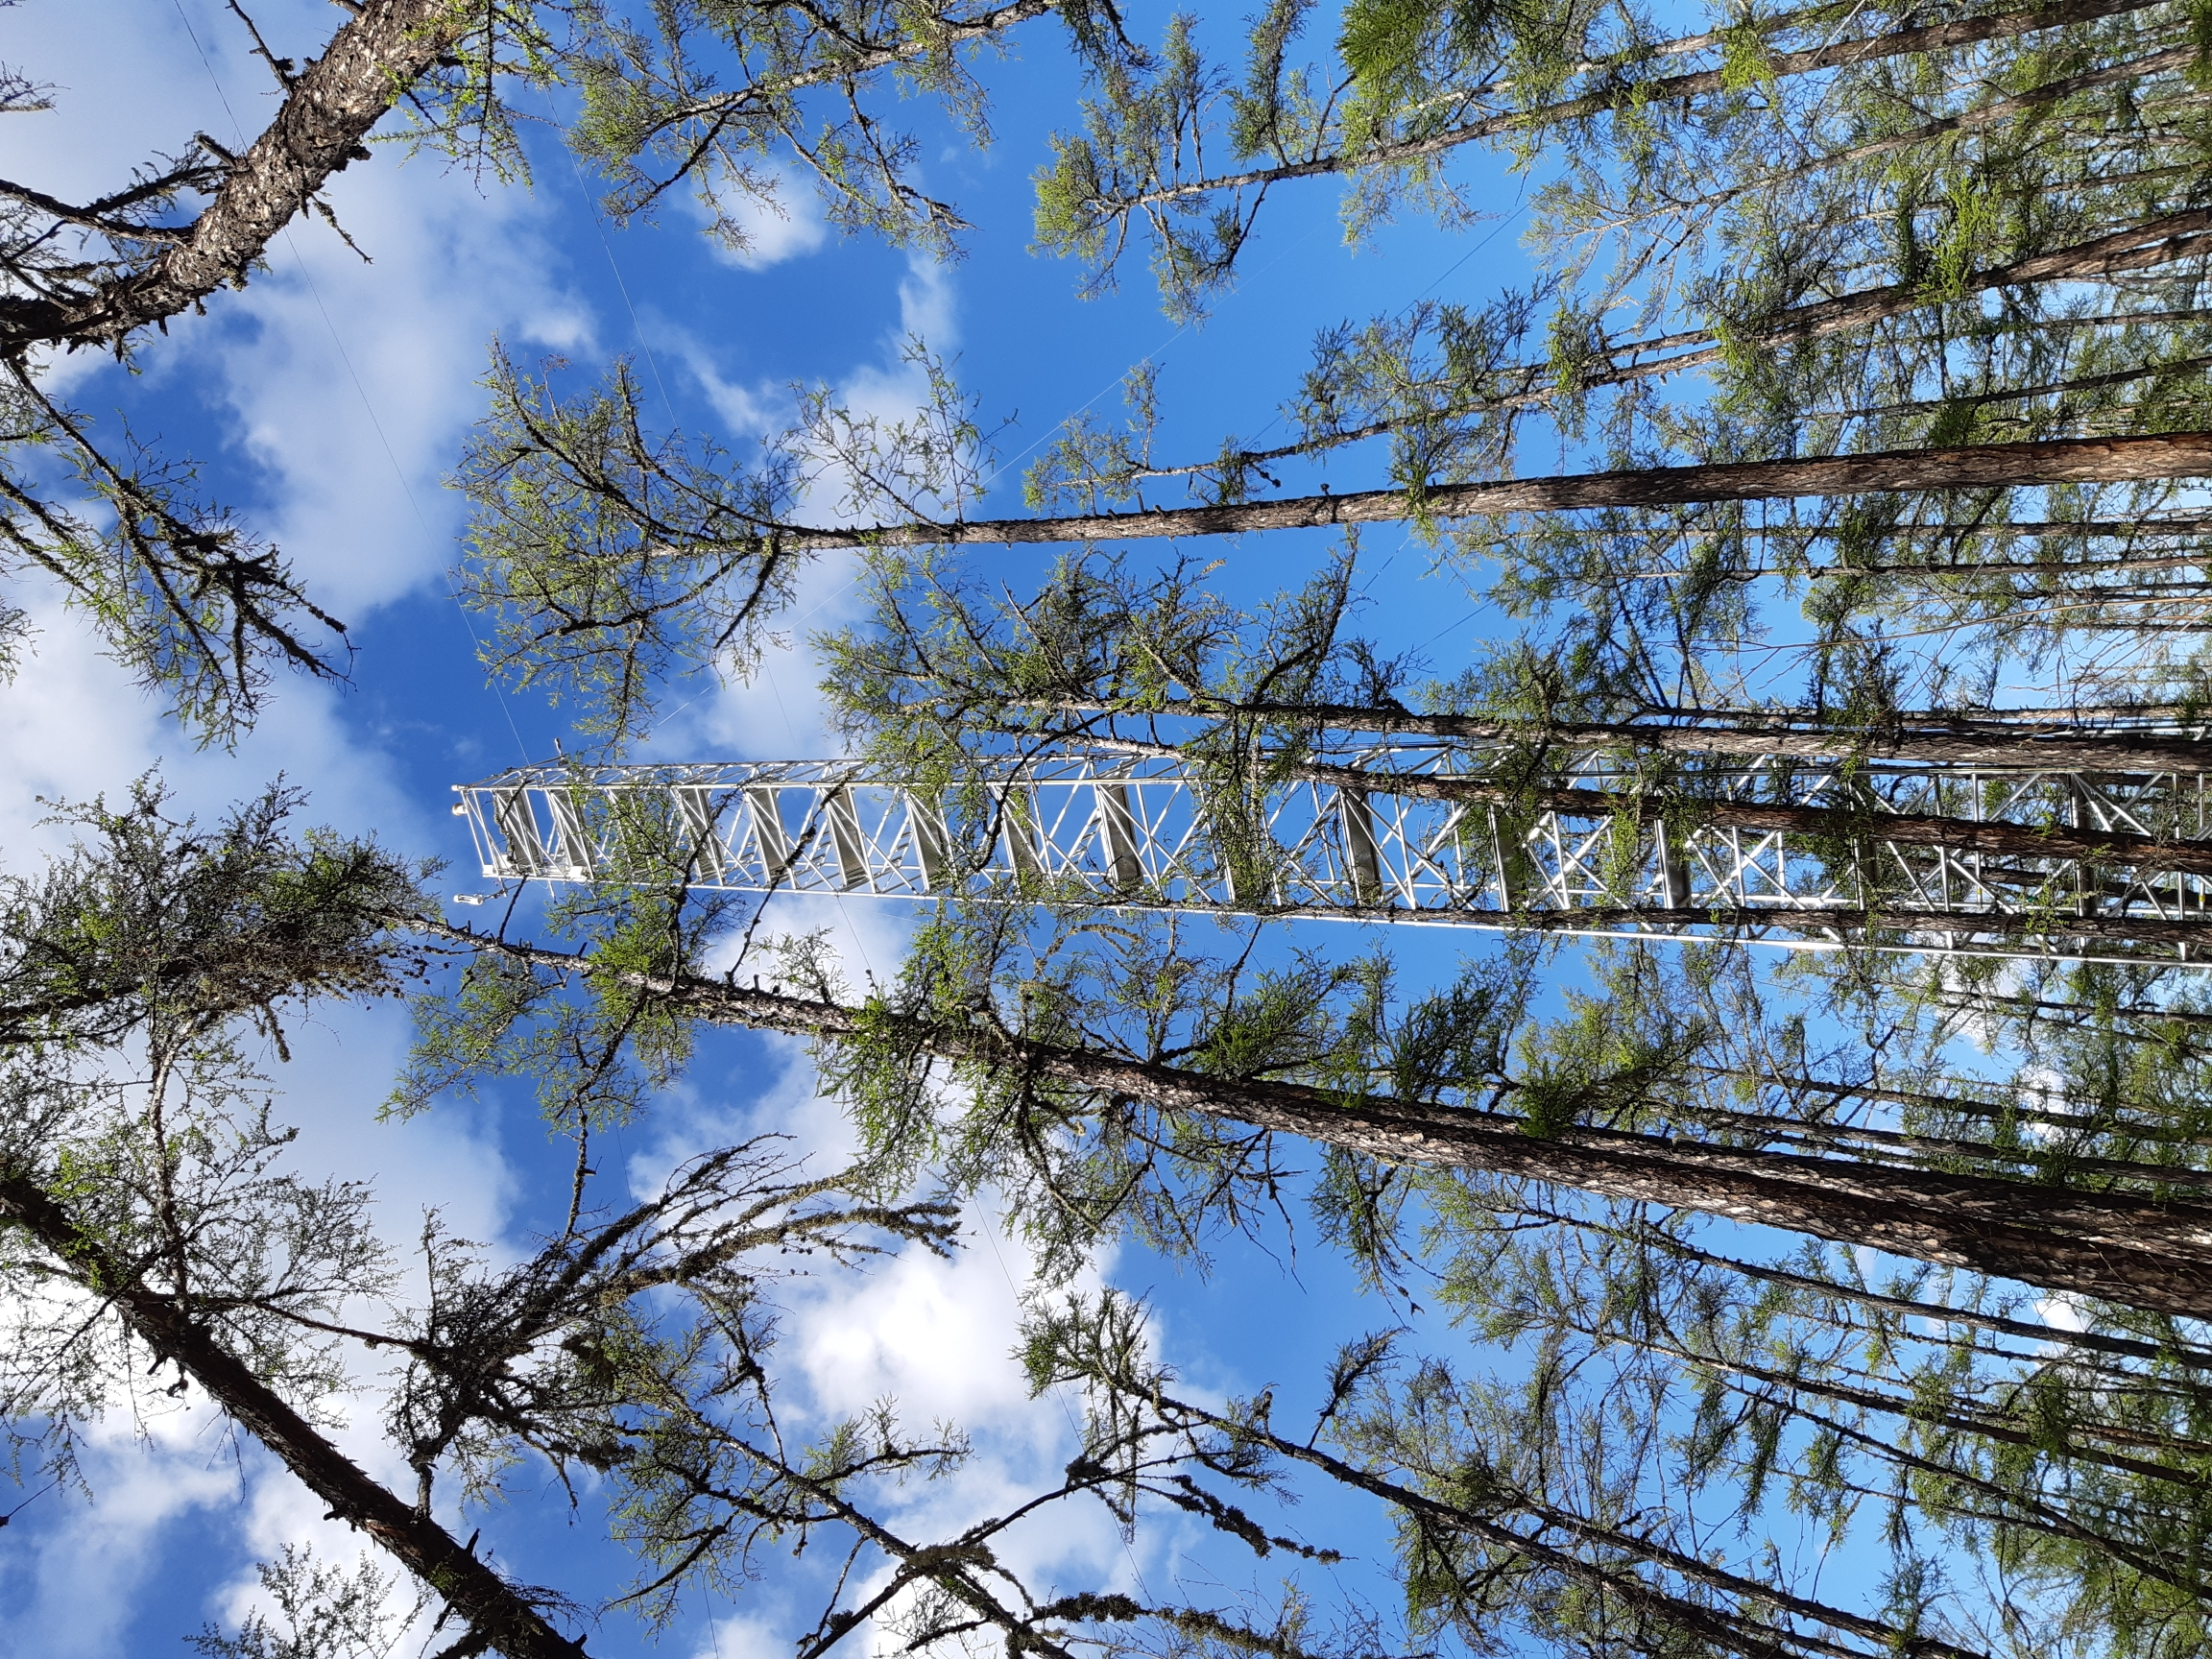 Weather observation tower established in a Japanese larch forest, which is widely spread across Eastern Siberia